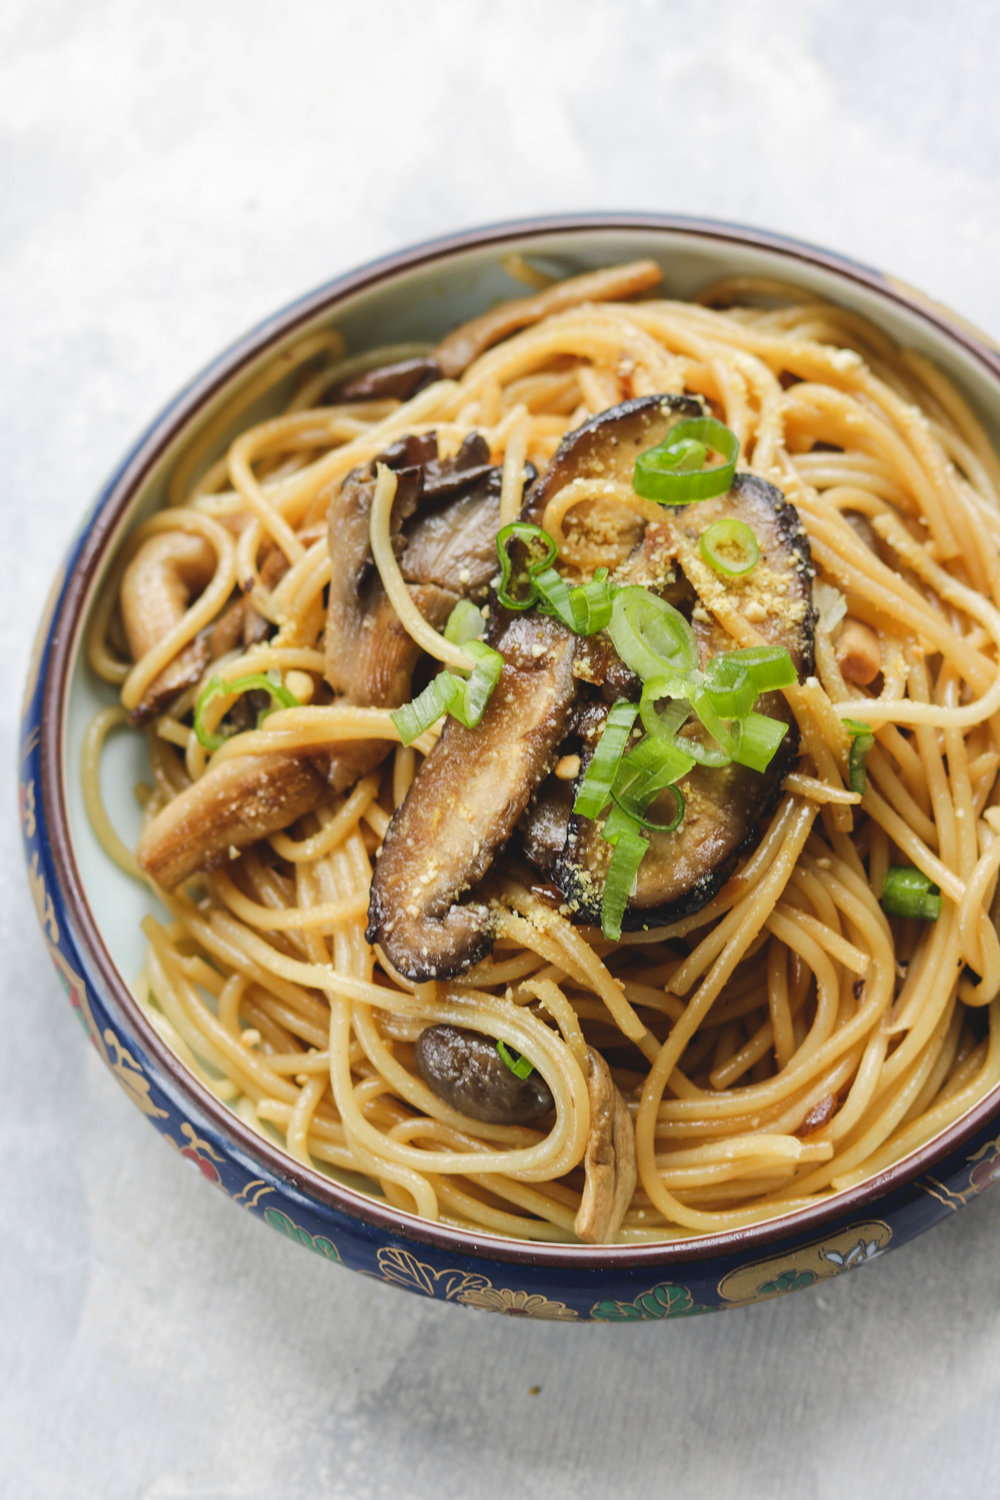 Parmesan Garlic Butter Pasta with Mushrooms (VEGAN)1 (1 of 10).jpg